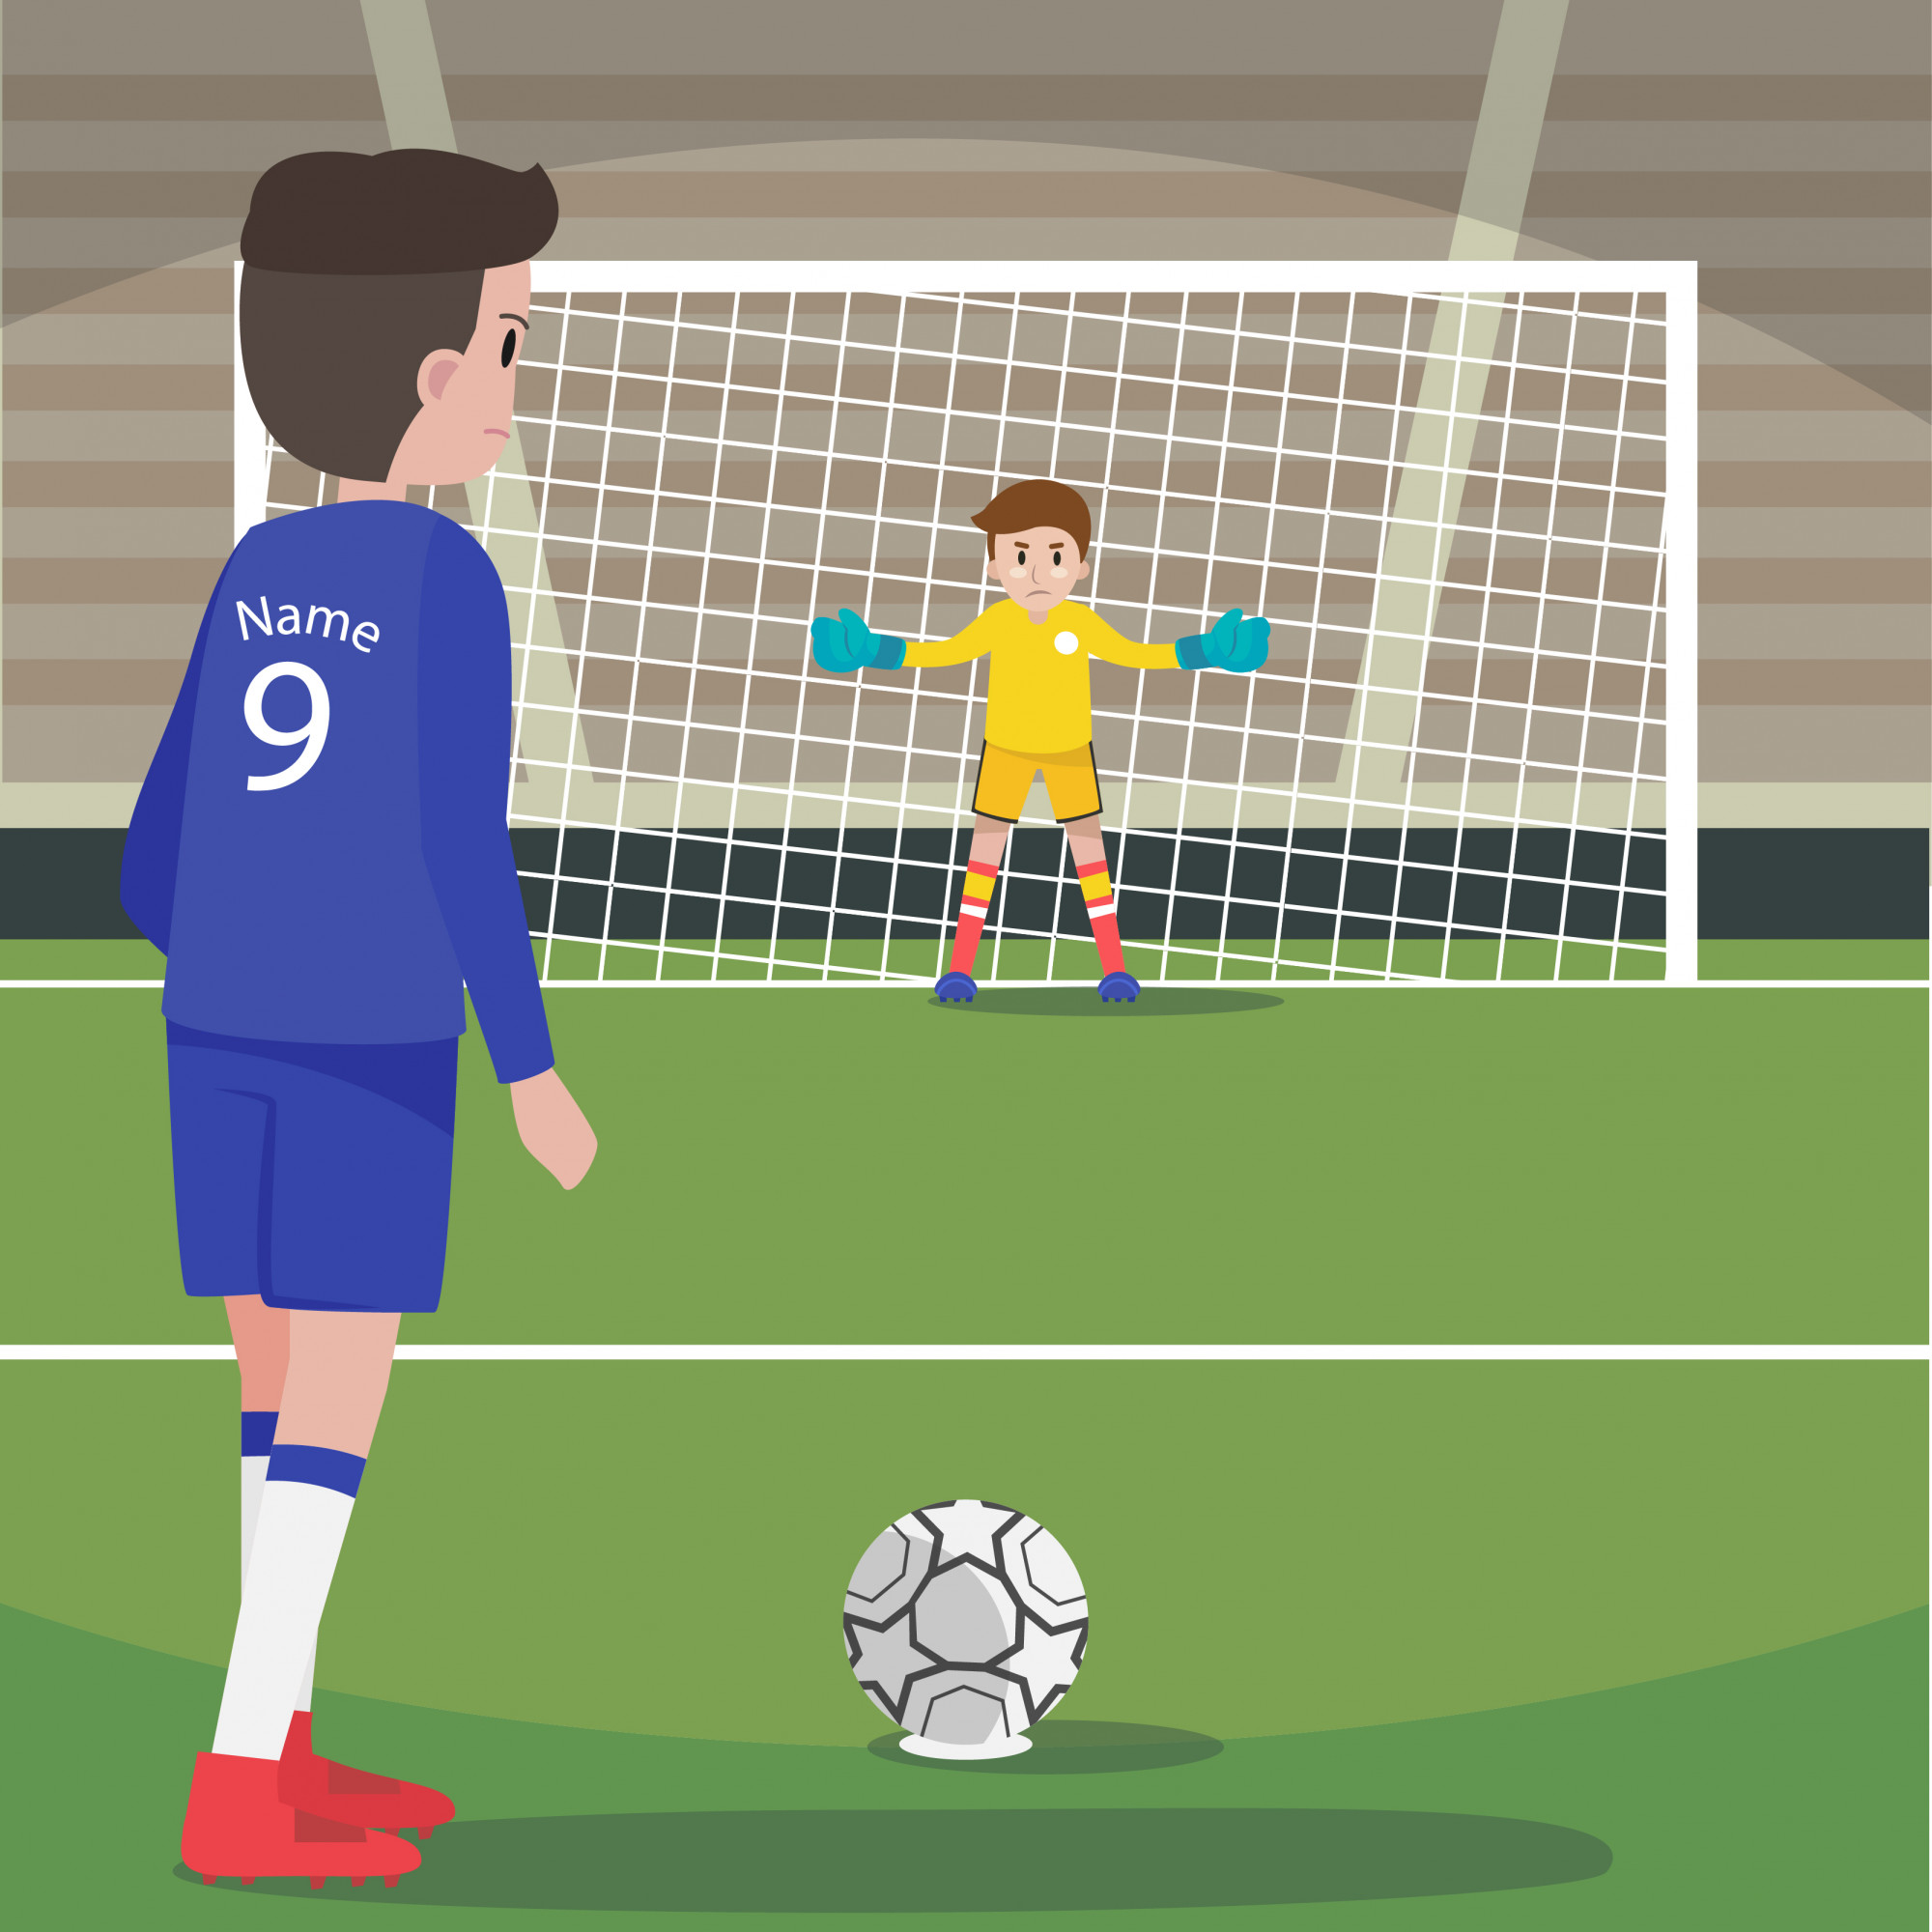 Character football player at penalty shoot position with goalkeeper